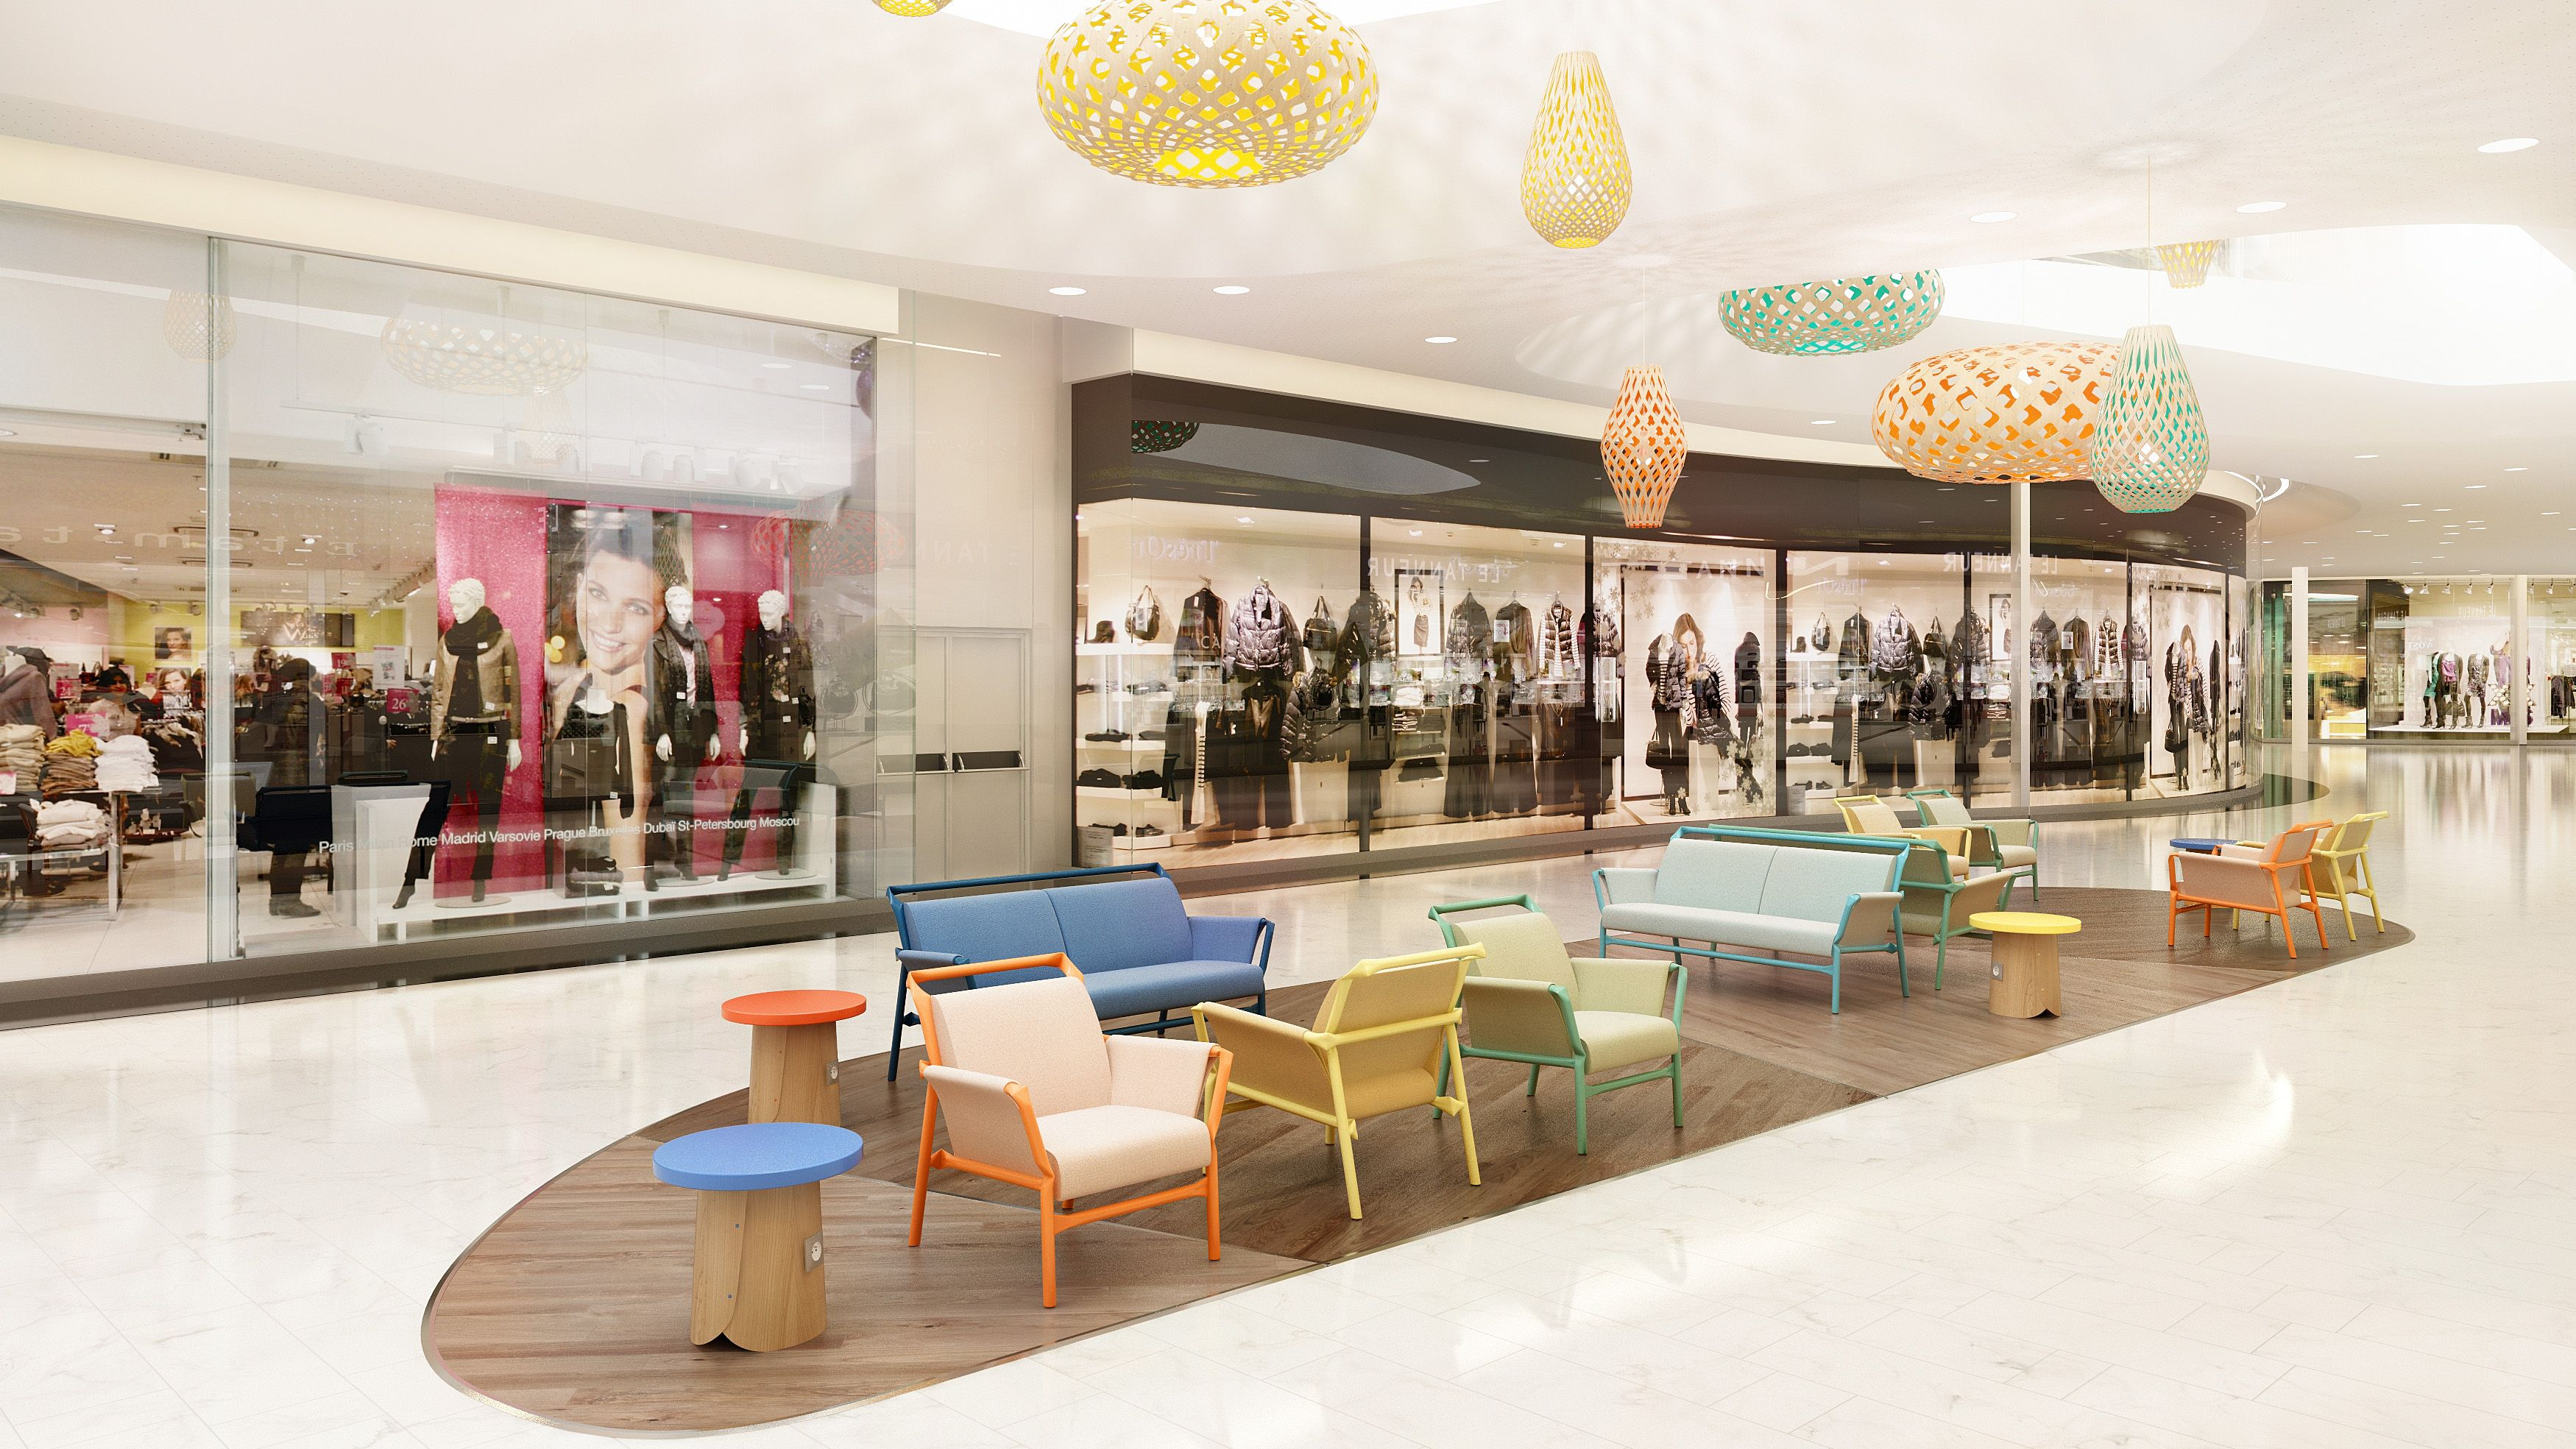 Mall of scandinavia by piran se studio 01 01 shopping for Furniture mall